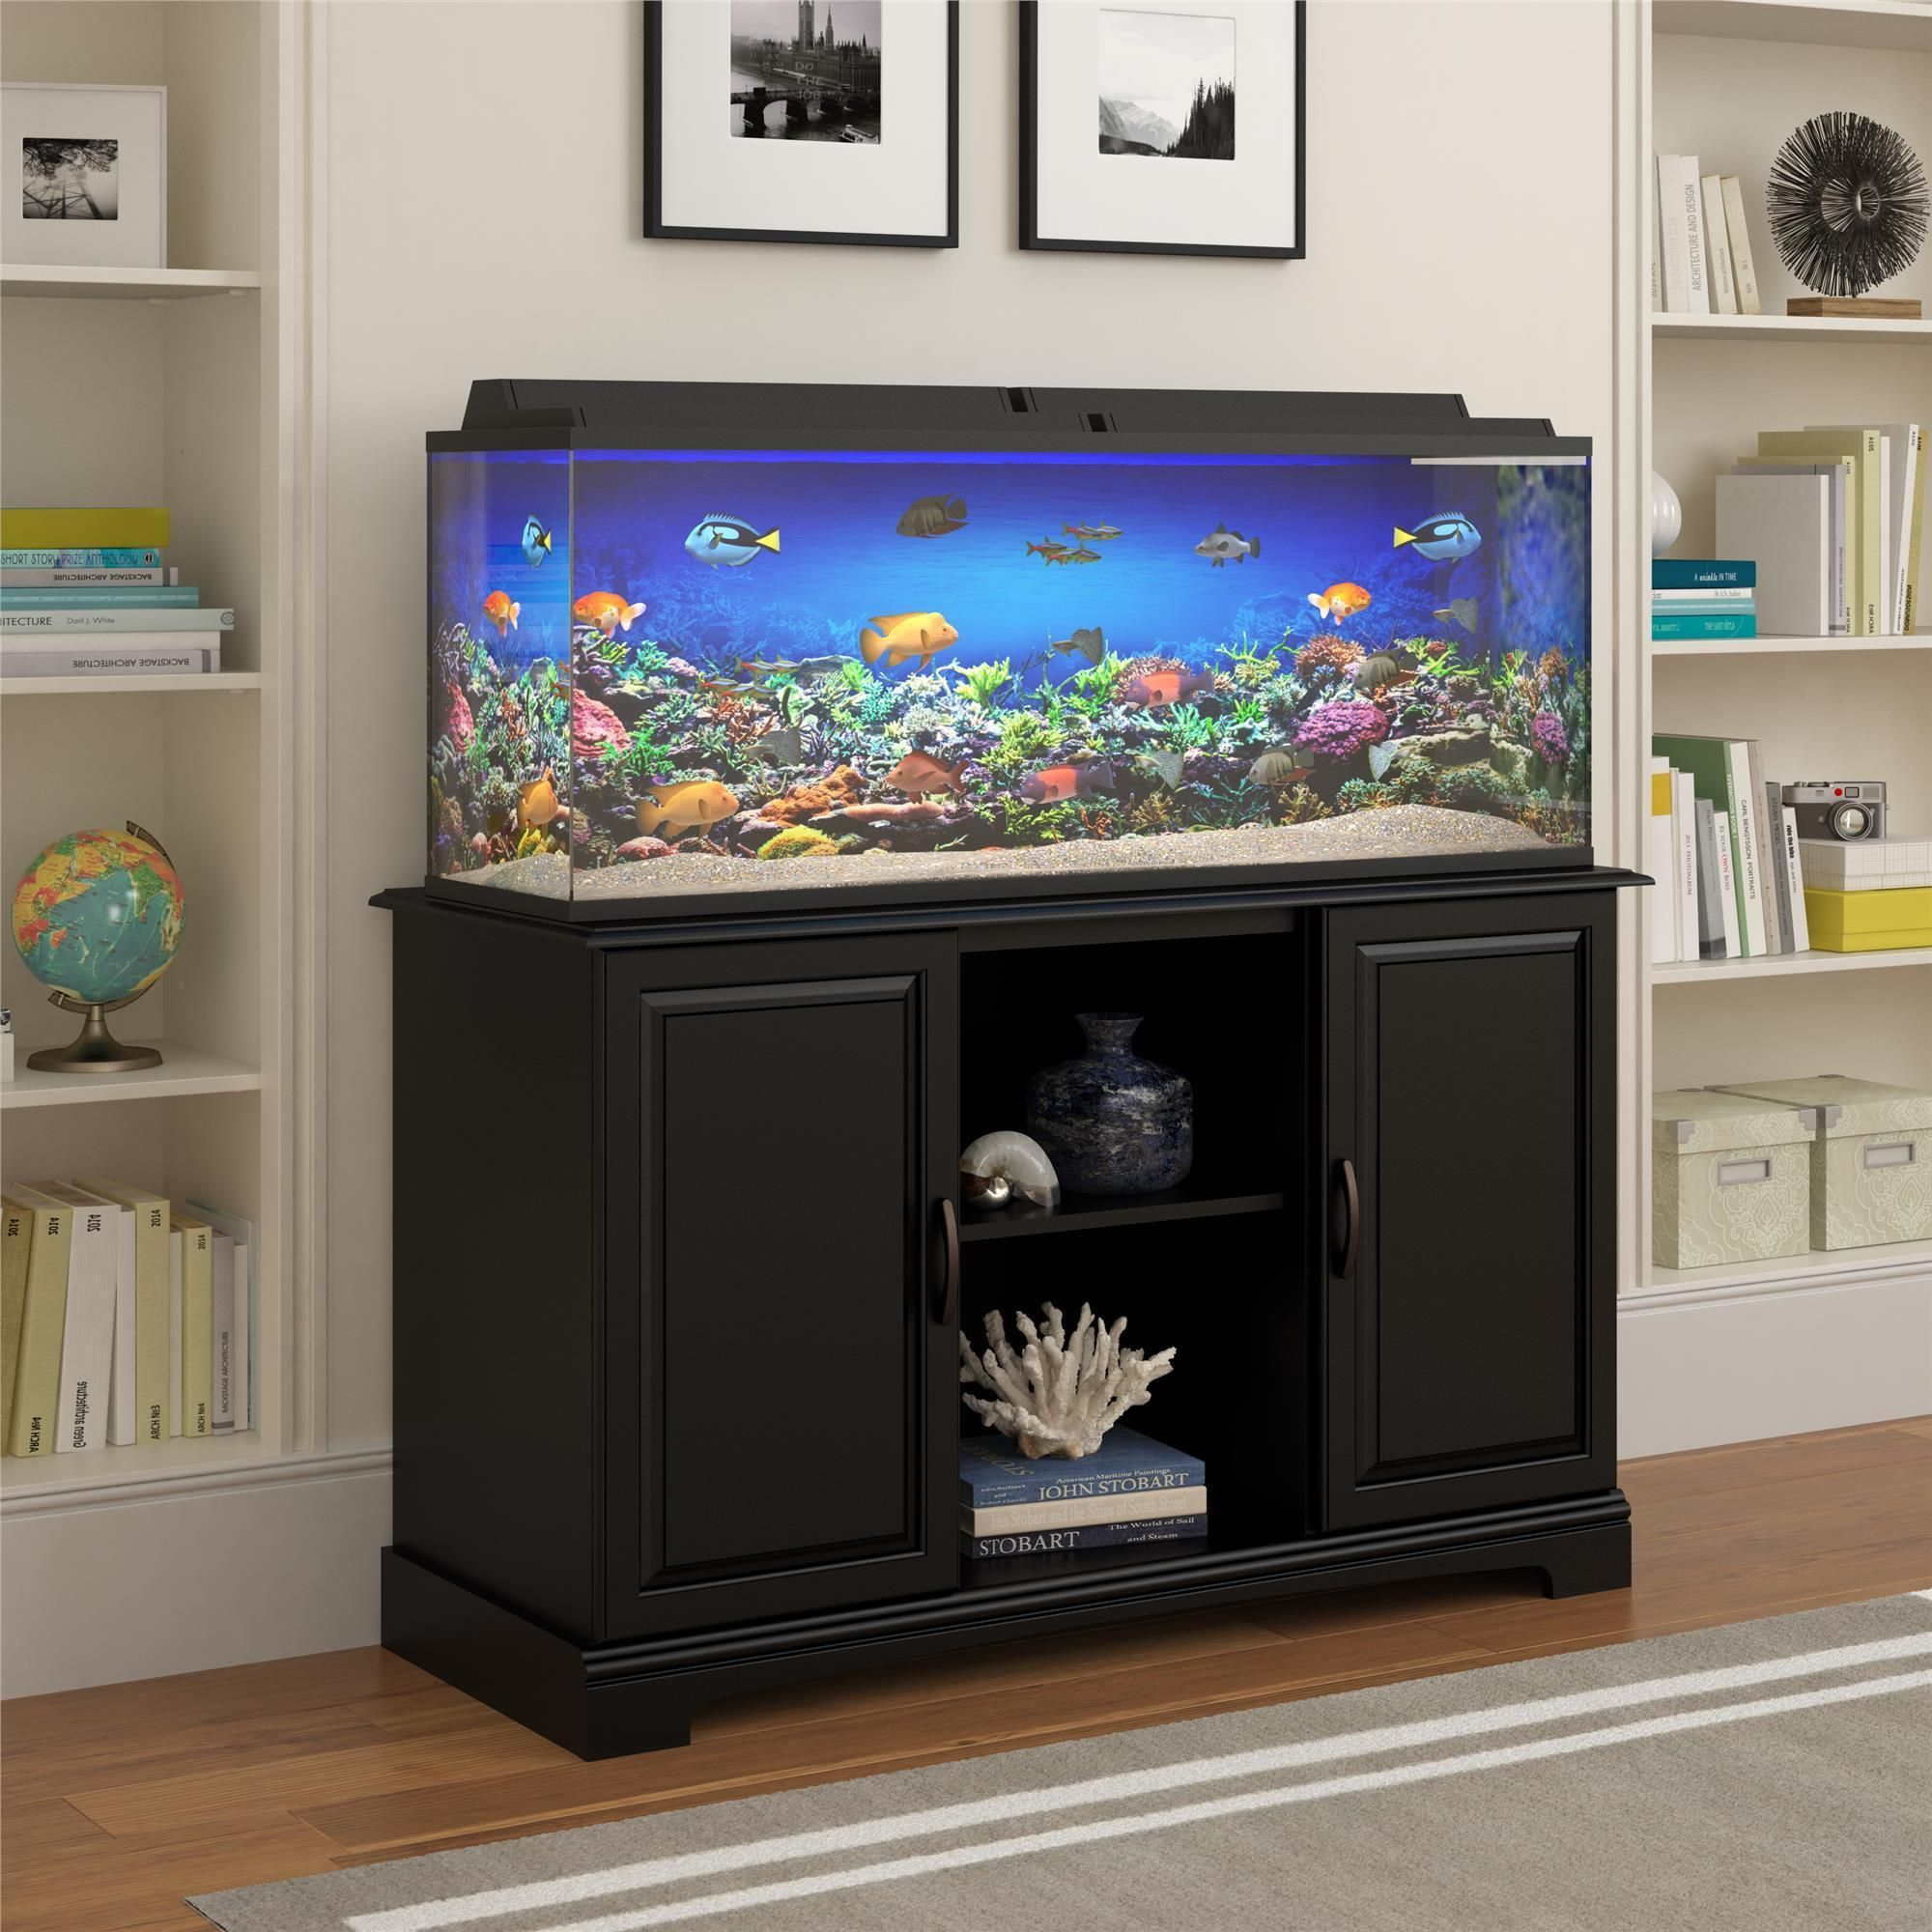 Altra harbor 50 75 gallon aquarium stand fish tanks for 50 gallon fish tank dimensions